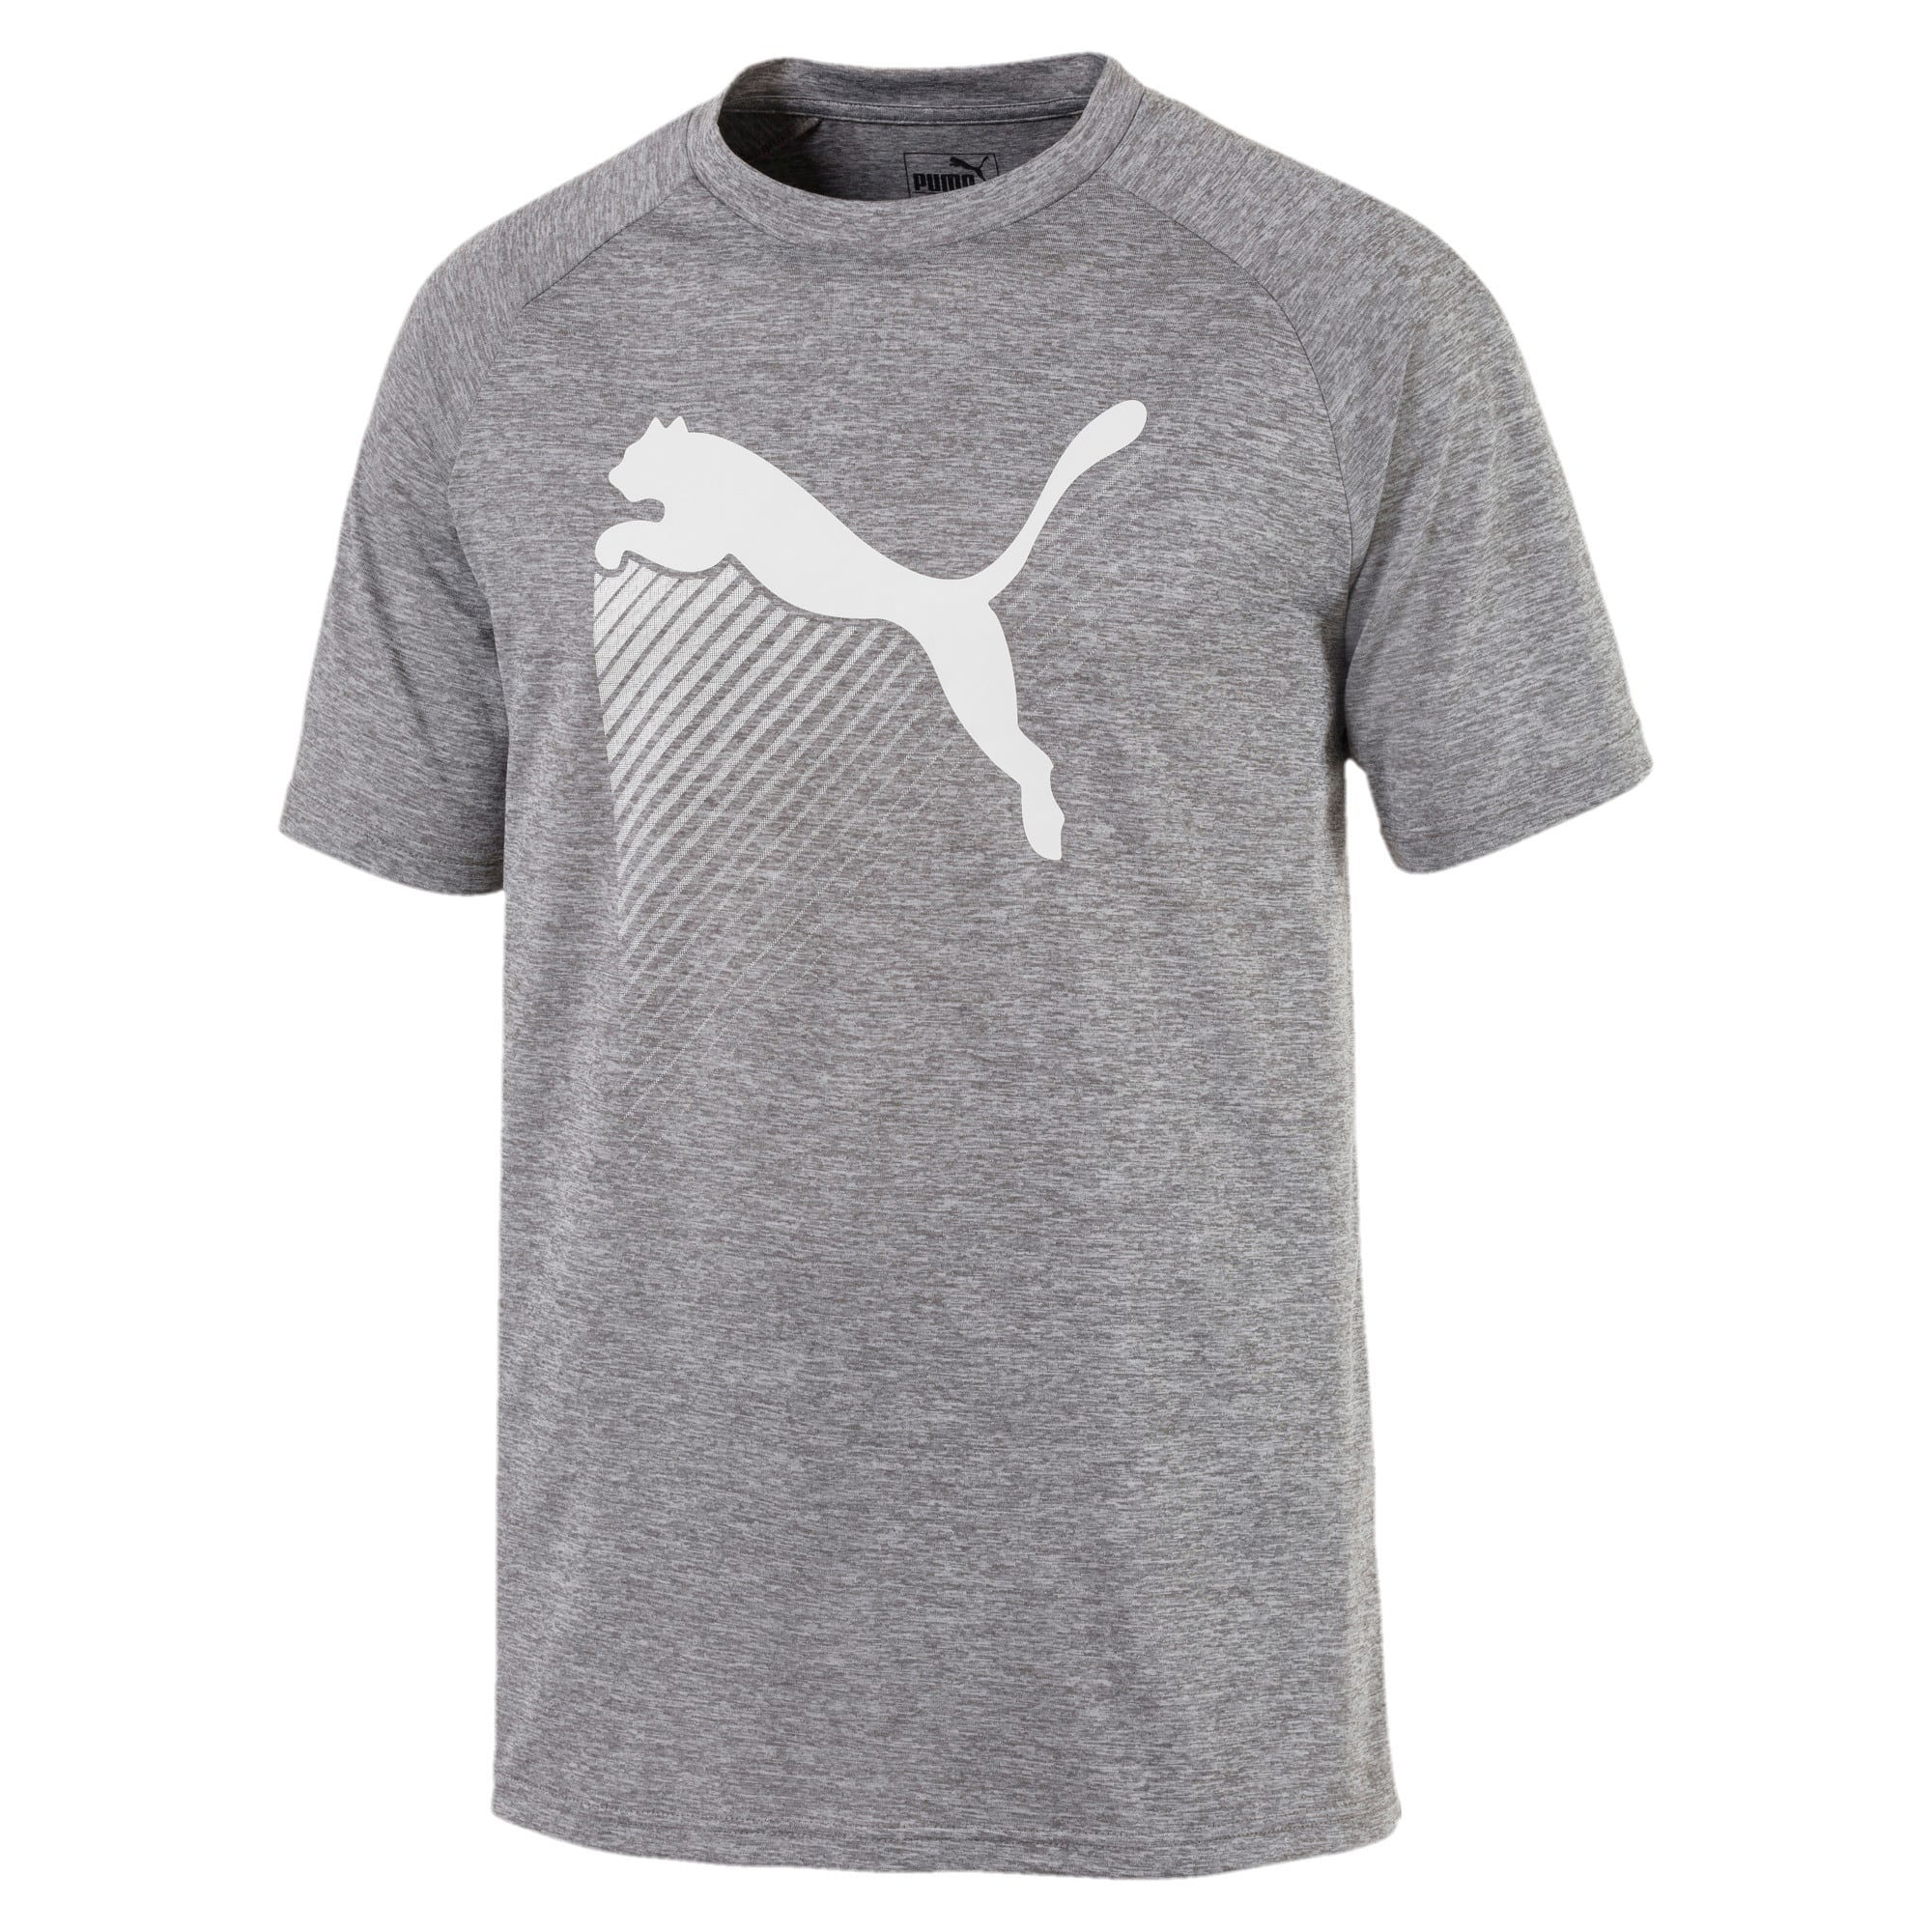 Thumbnail 3 of The CAT Heather Men's Training Tee, Charcoal Gray Heather, medium-IND